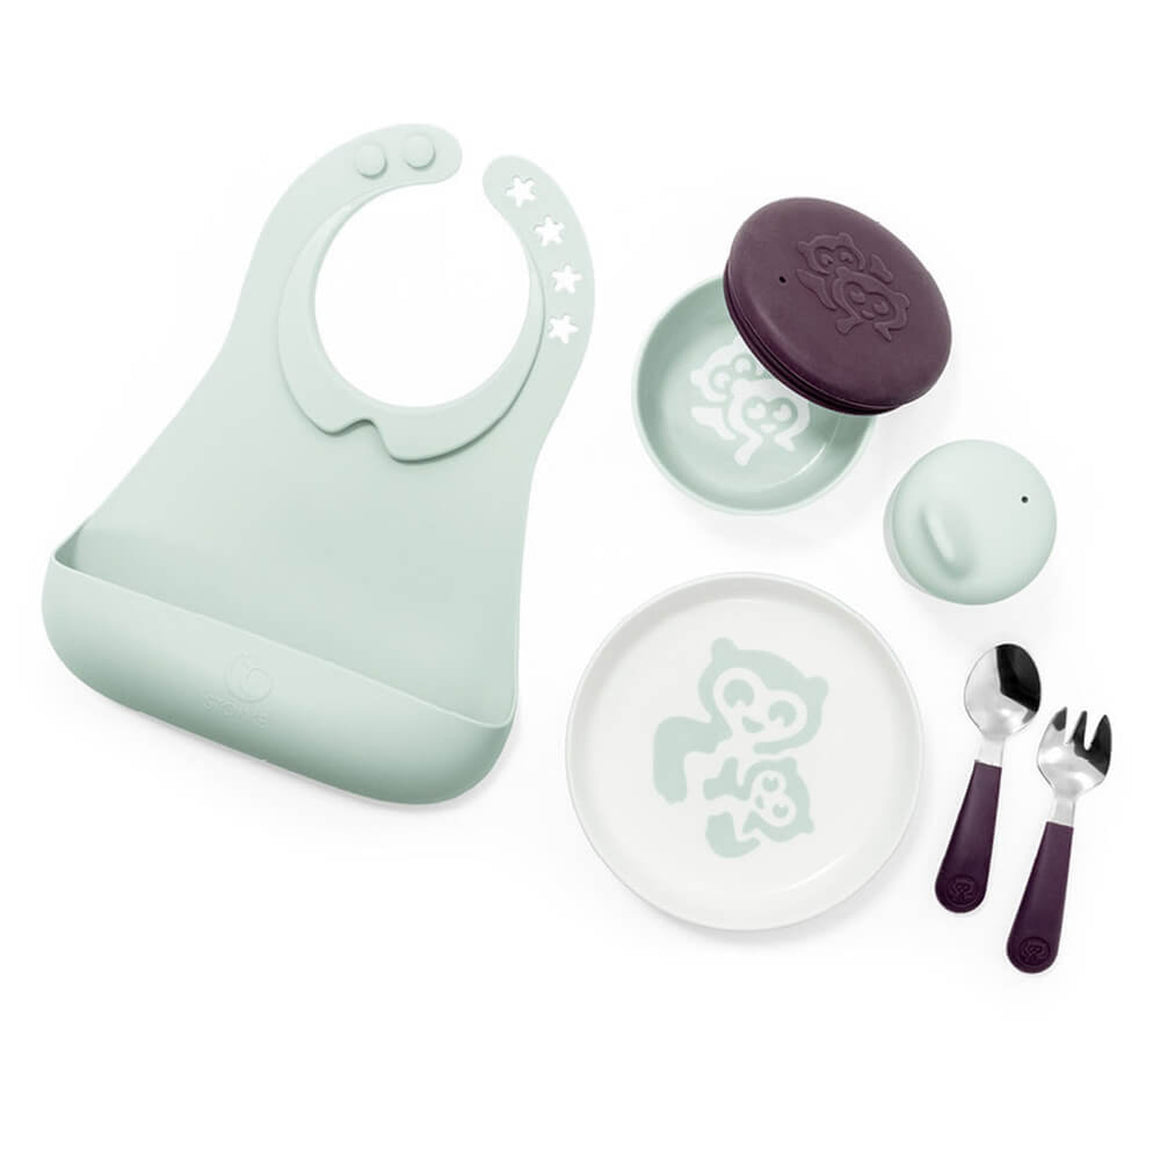 Stokke Munch Complet set-Feeding - Cutlery-Baby Little Planet Hoppers Crossing